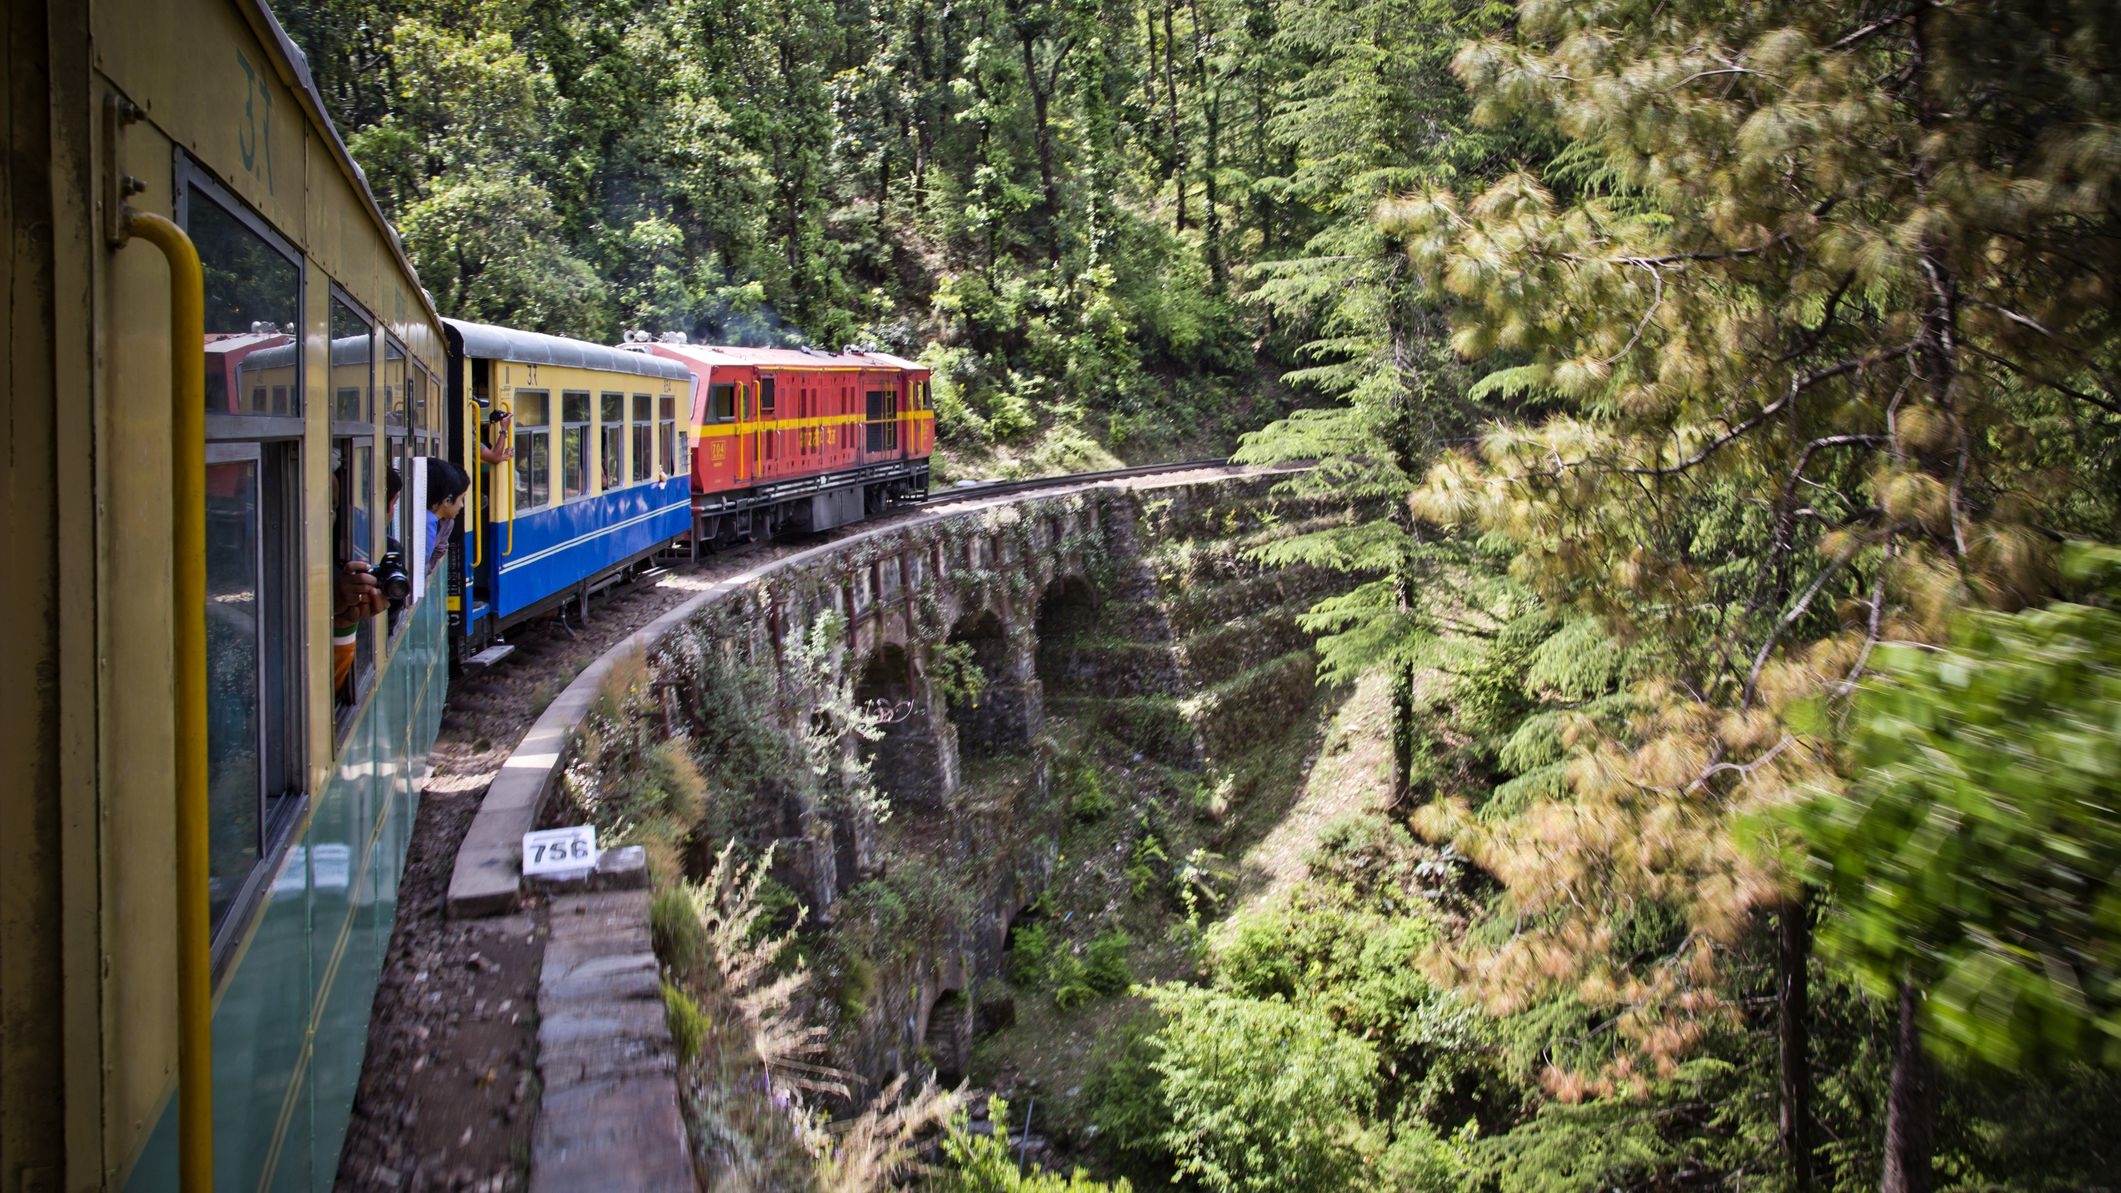 5 Scenic Mountain Railway Toy Trains in India